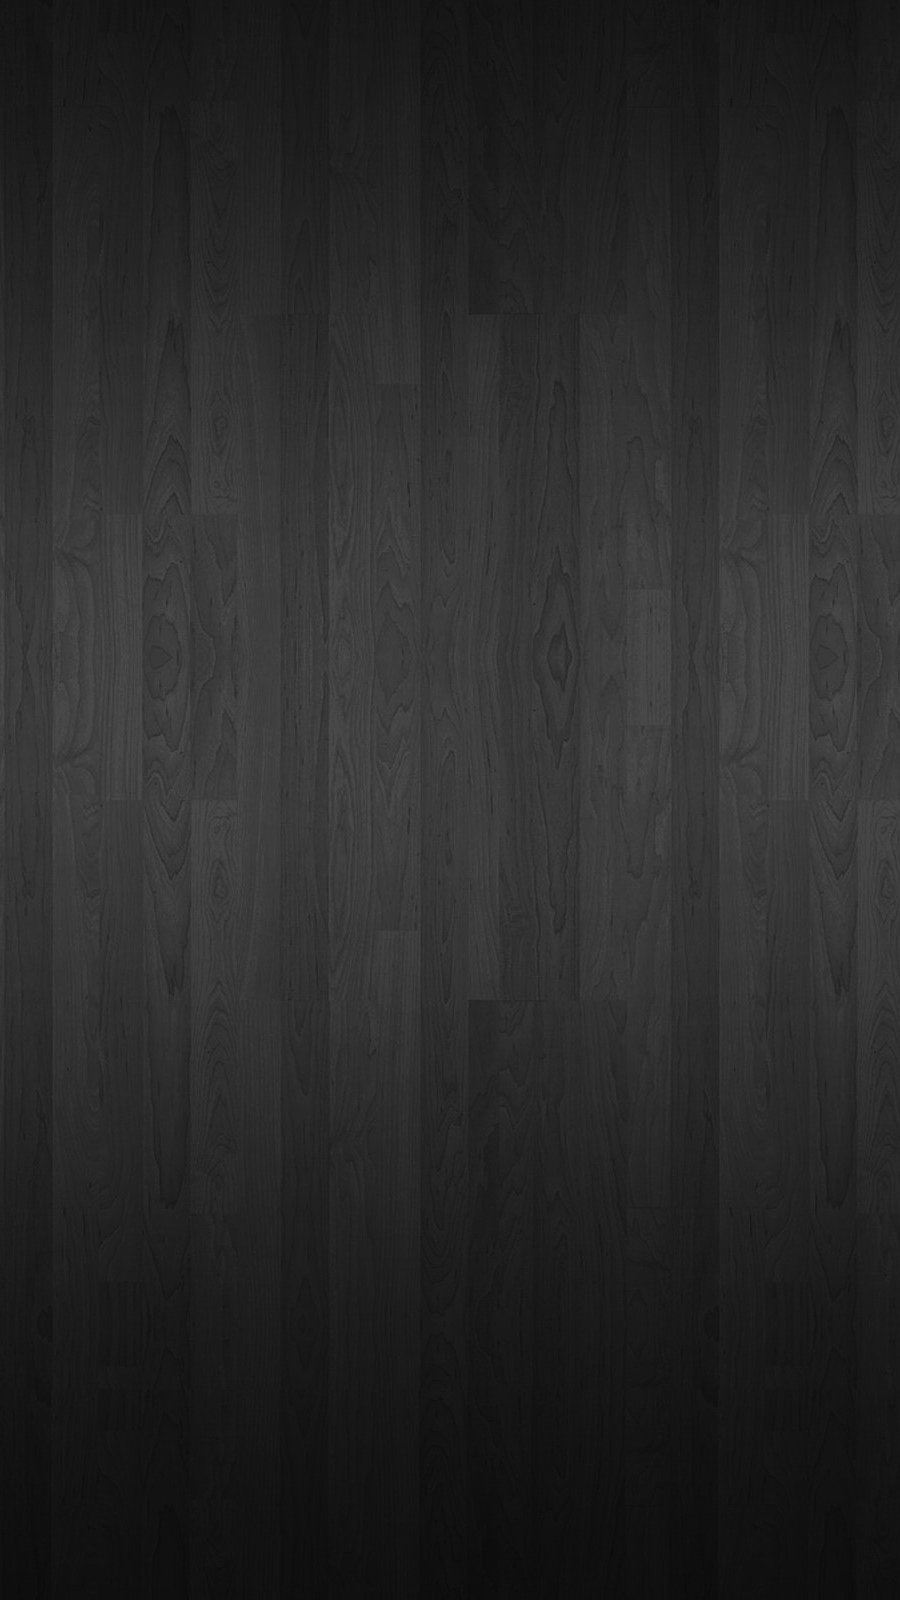 Wallpaper Wood texture in black Vertical